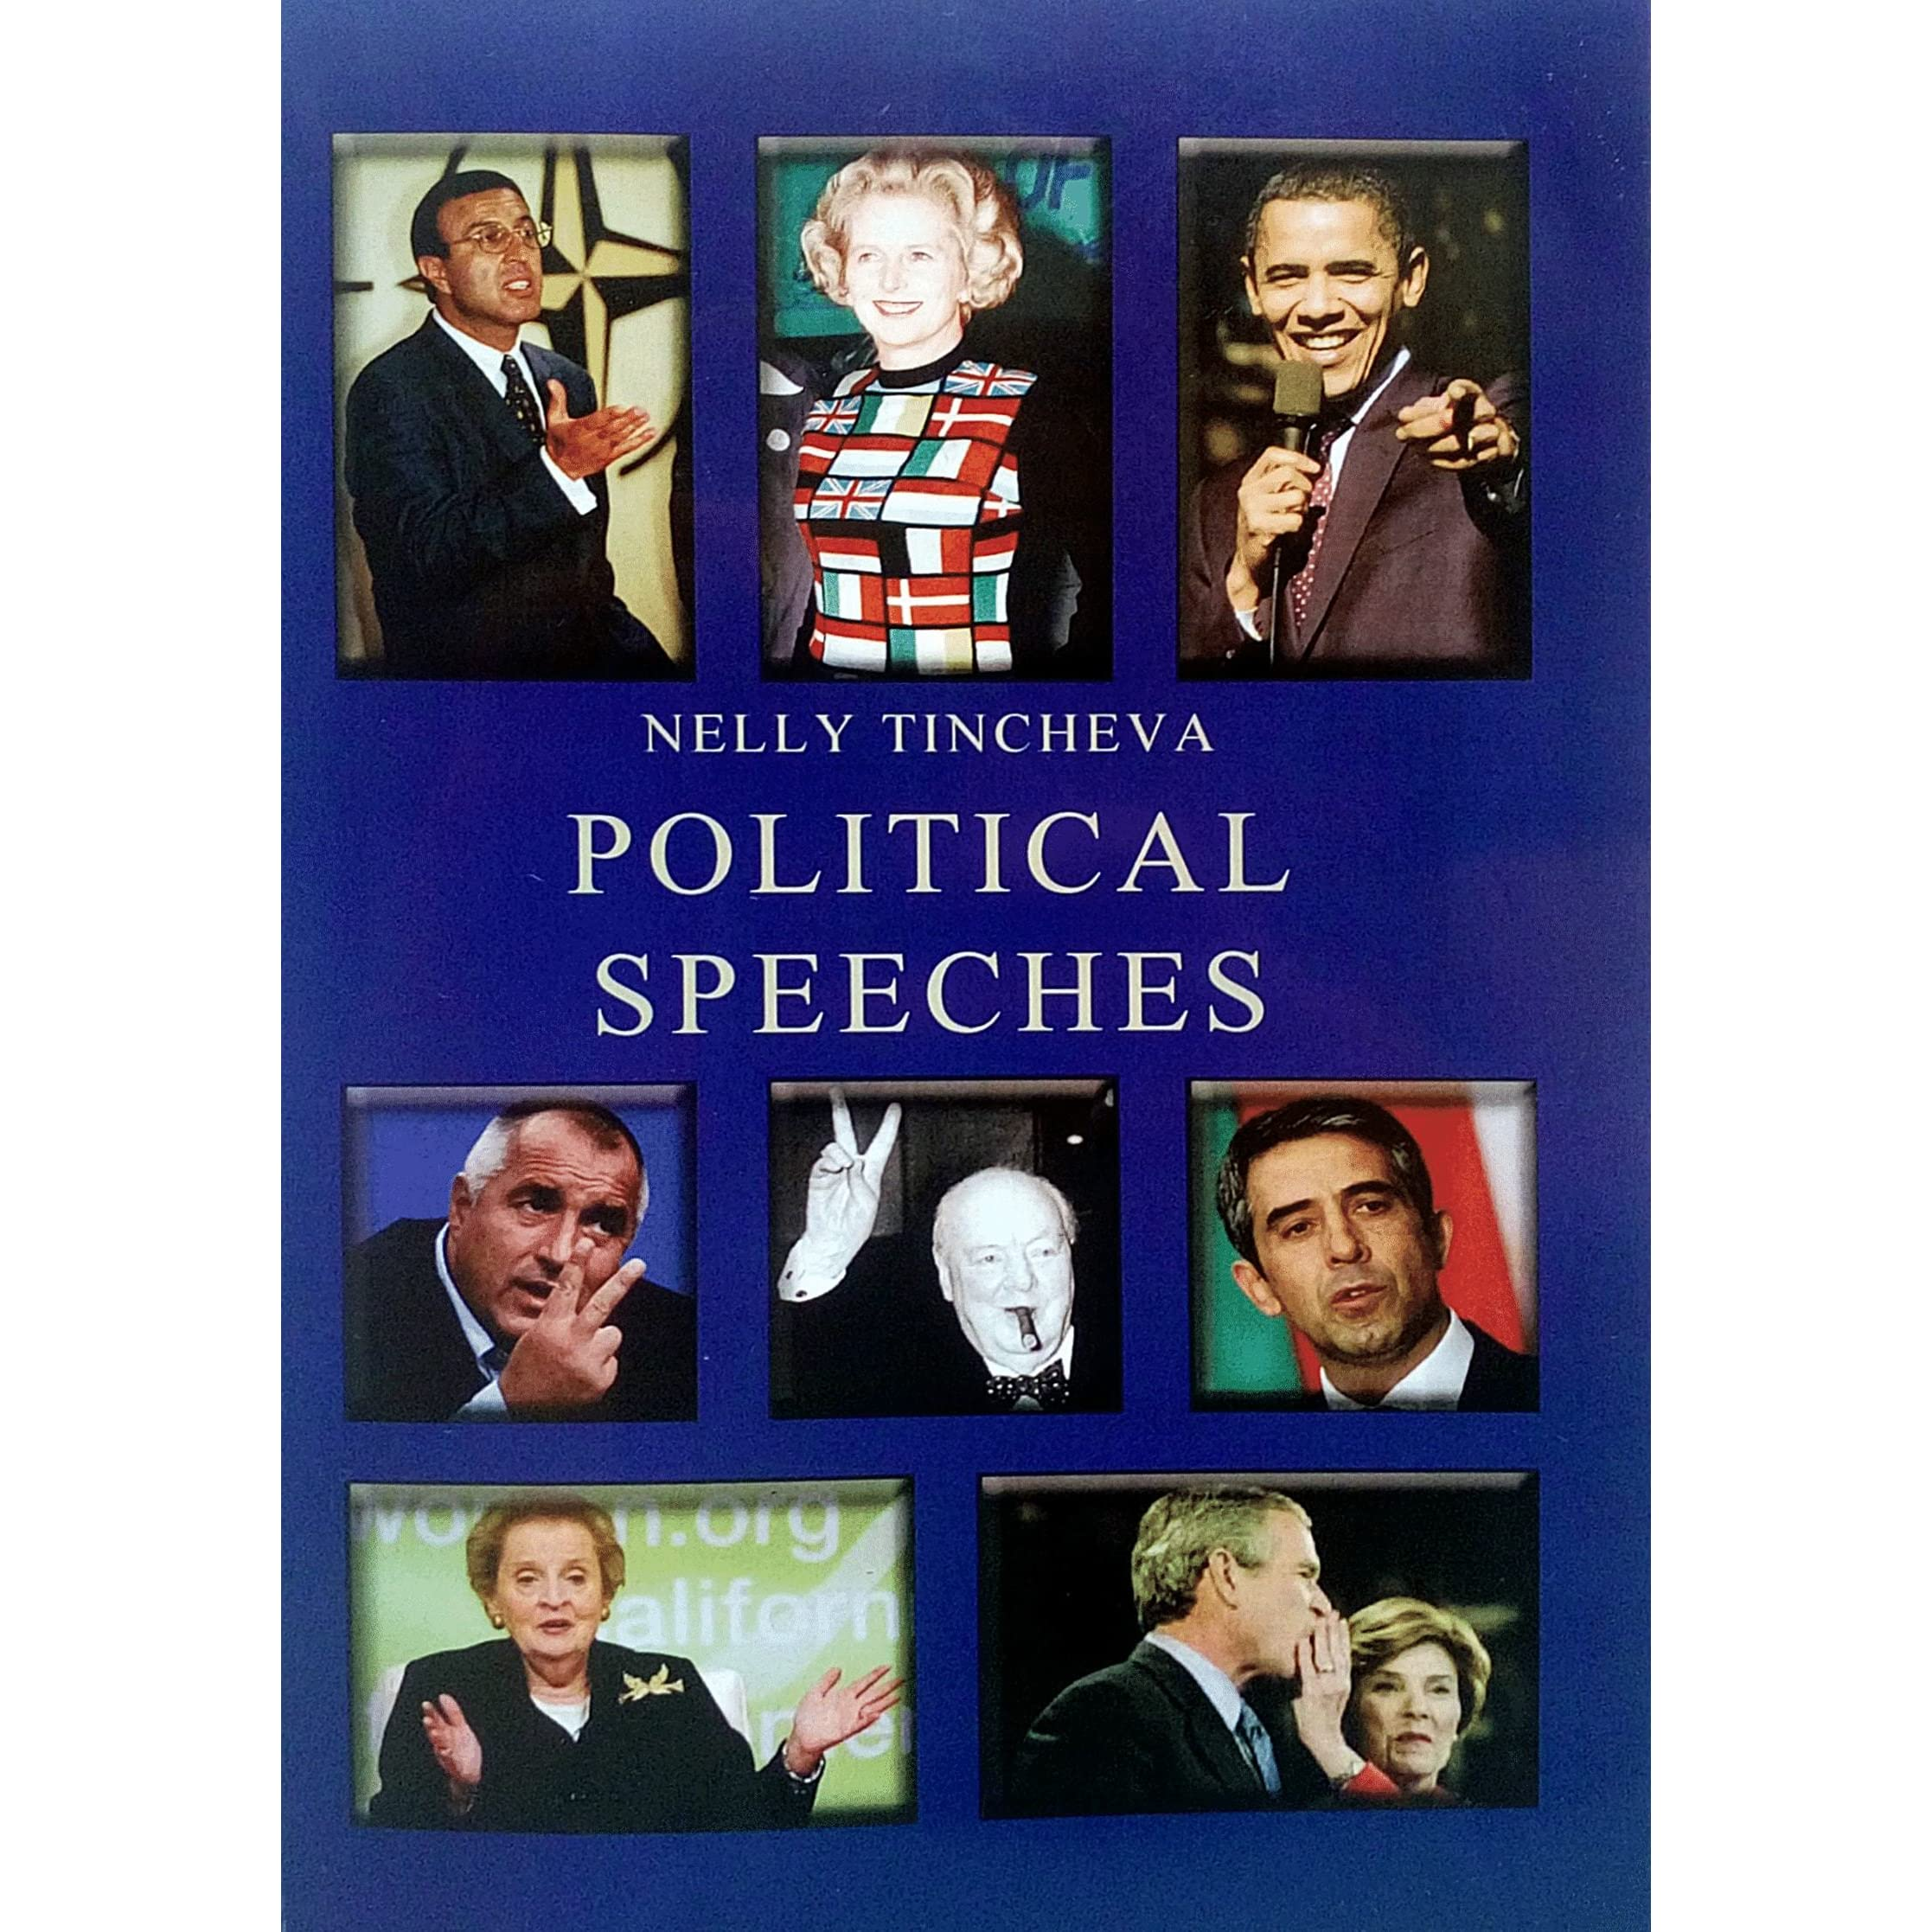 political speeches Welcome to british political speech, an online archive of british political speech and a place for the discussion, analysis, and critical appreciation of political rhetoric.